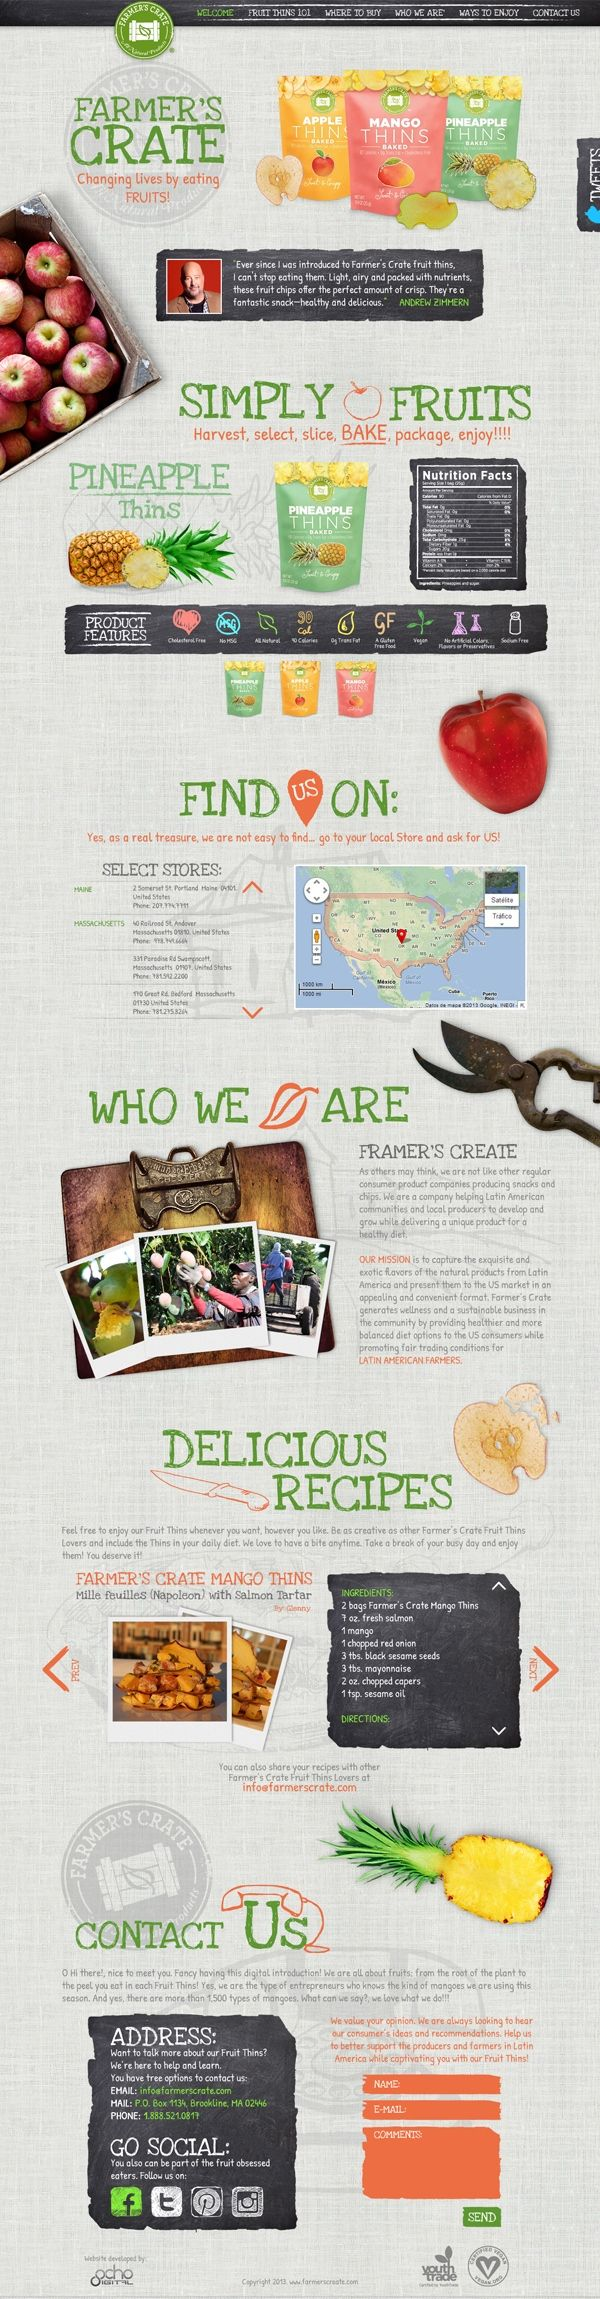 Best Web Design on the Internet, Farmer's Crate #webdesign #websitedesign #website #design http://www.pinterest.com/aldenchong/